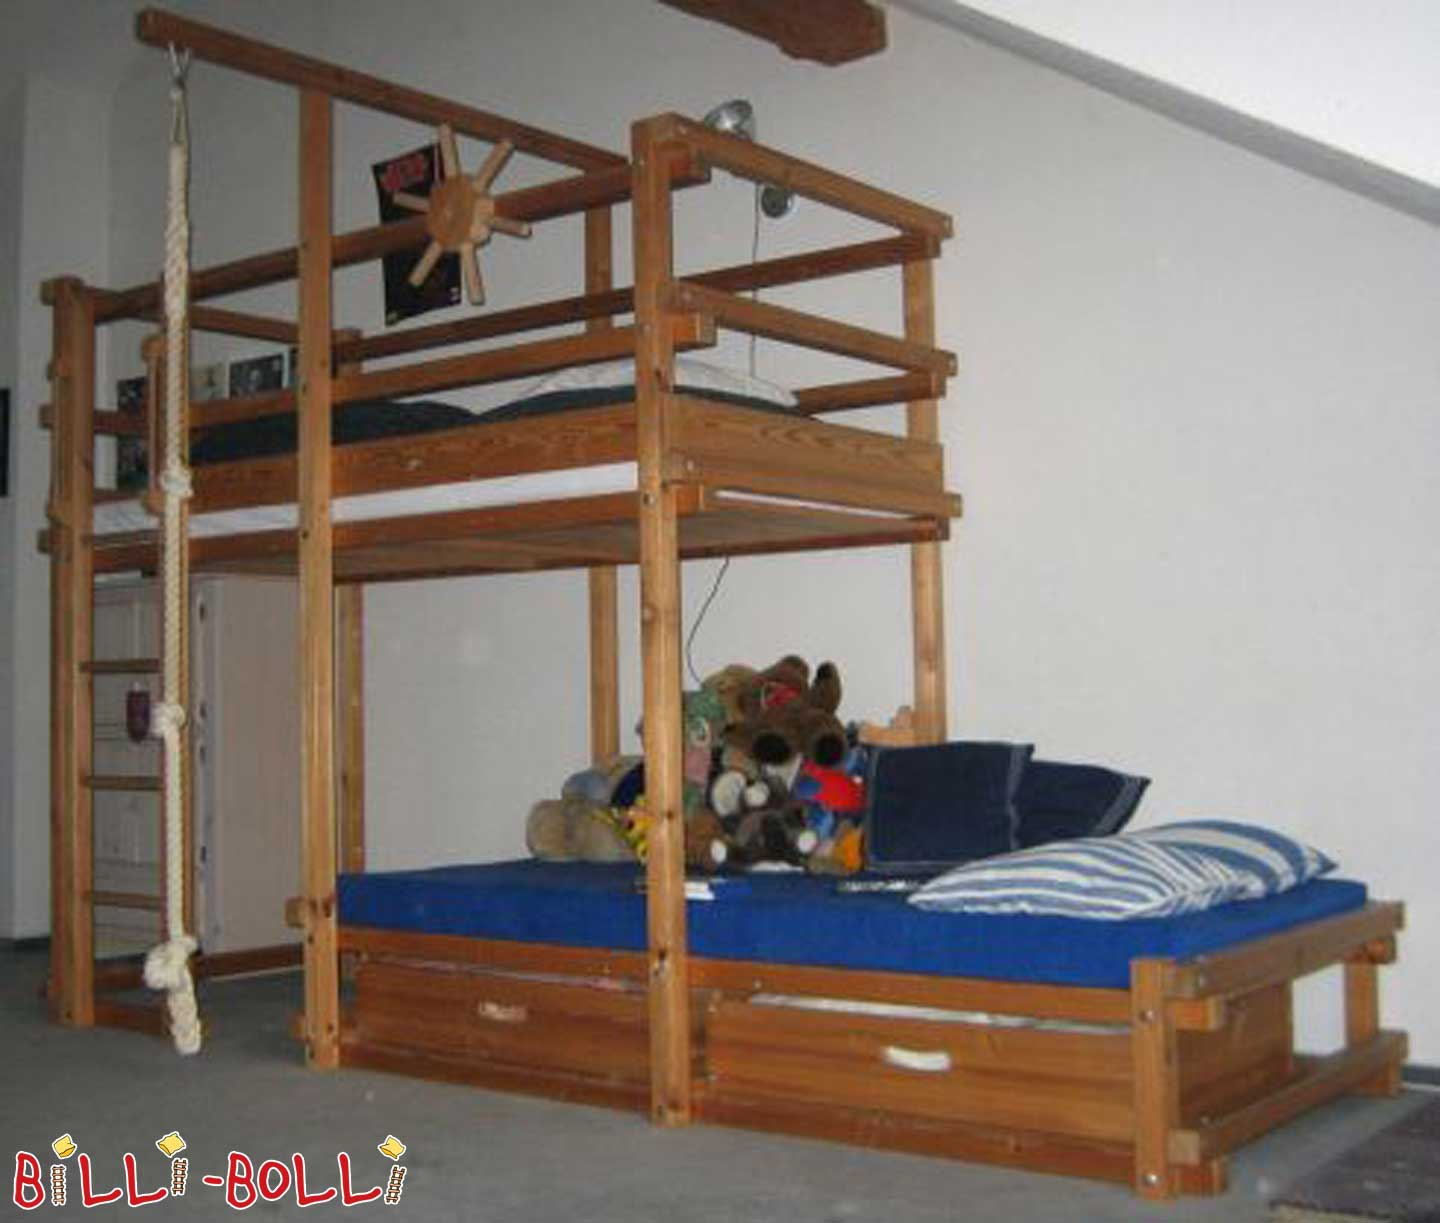 Gullibo, side offset bed (second hand kids' furniture)